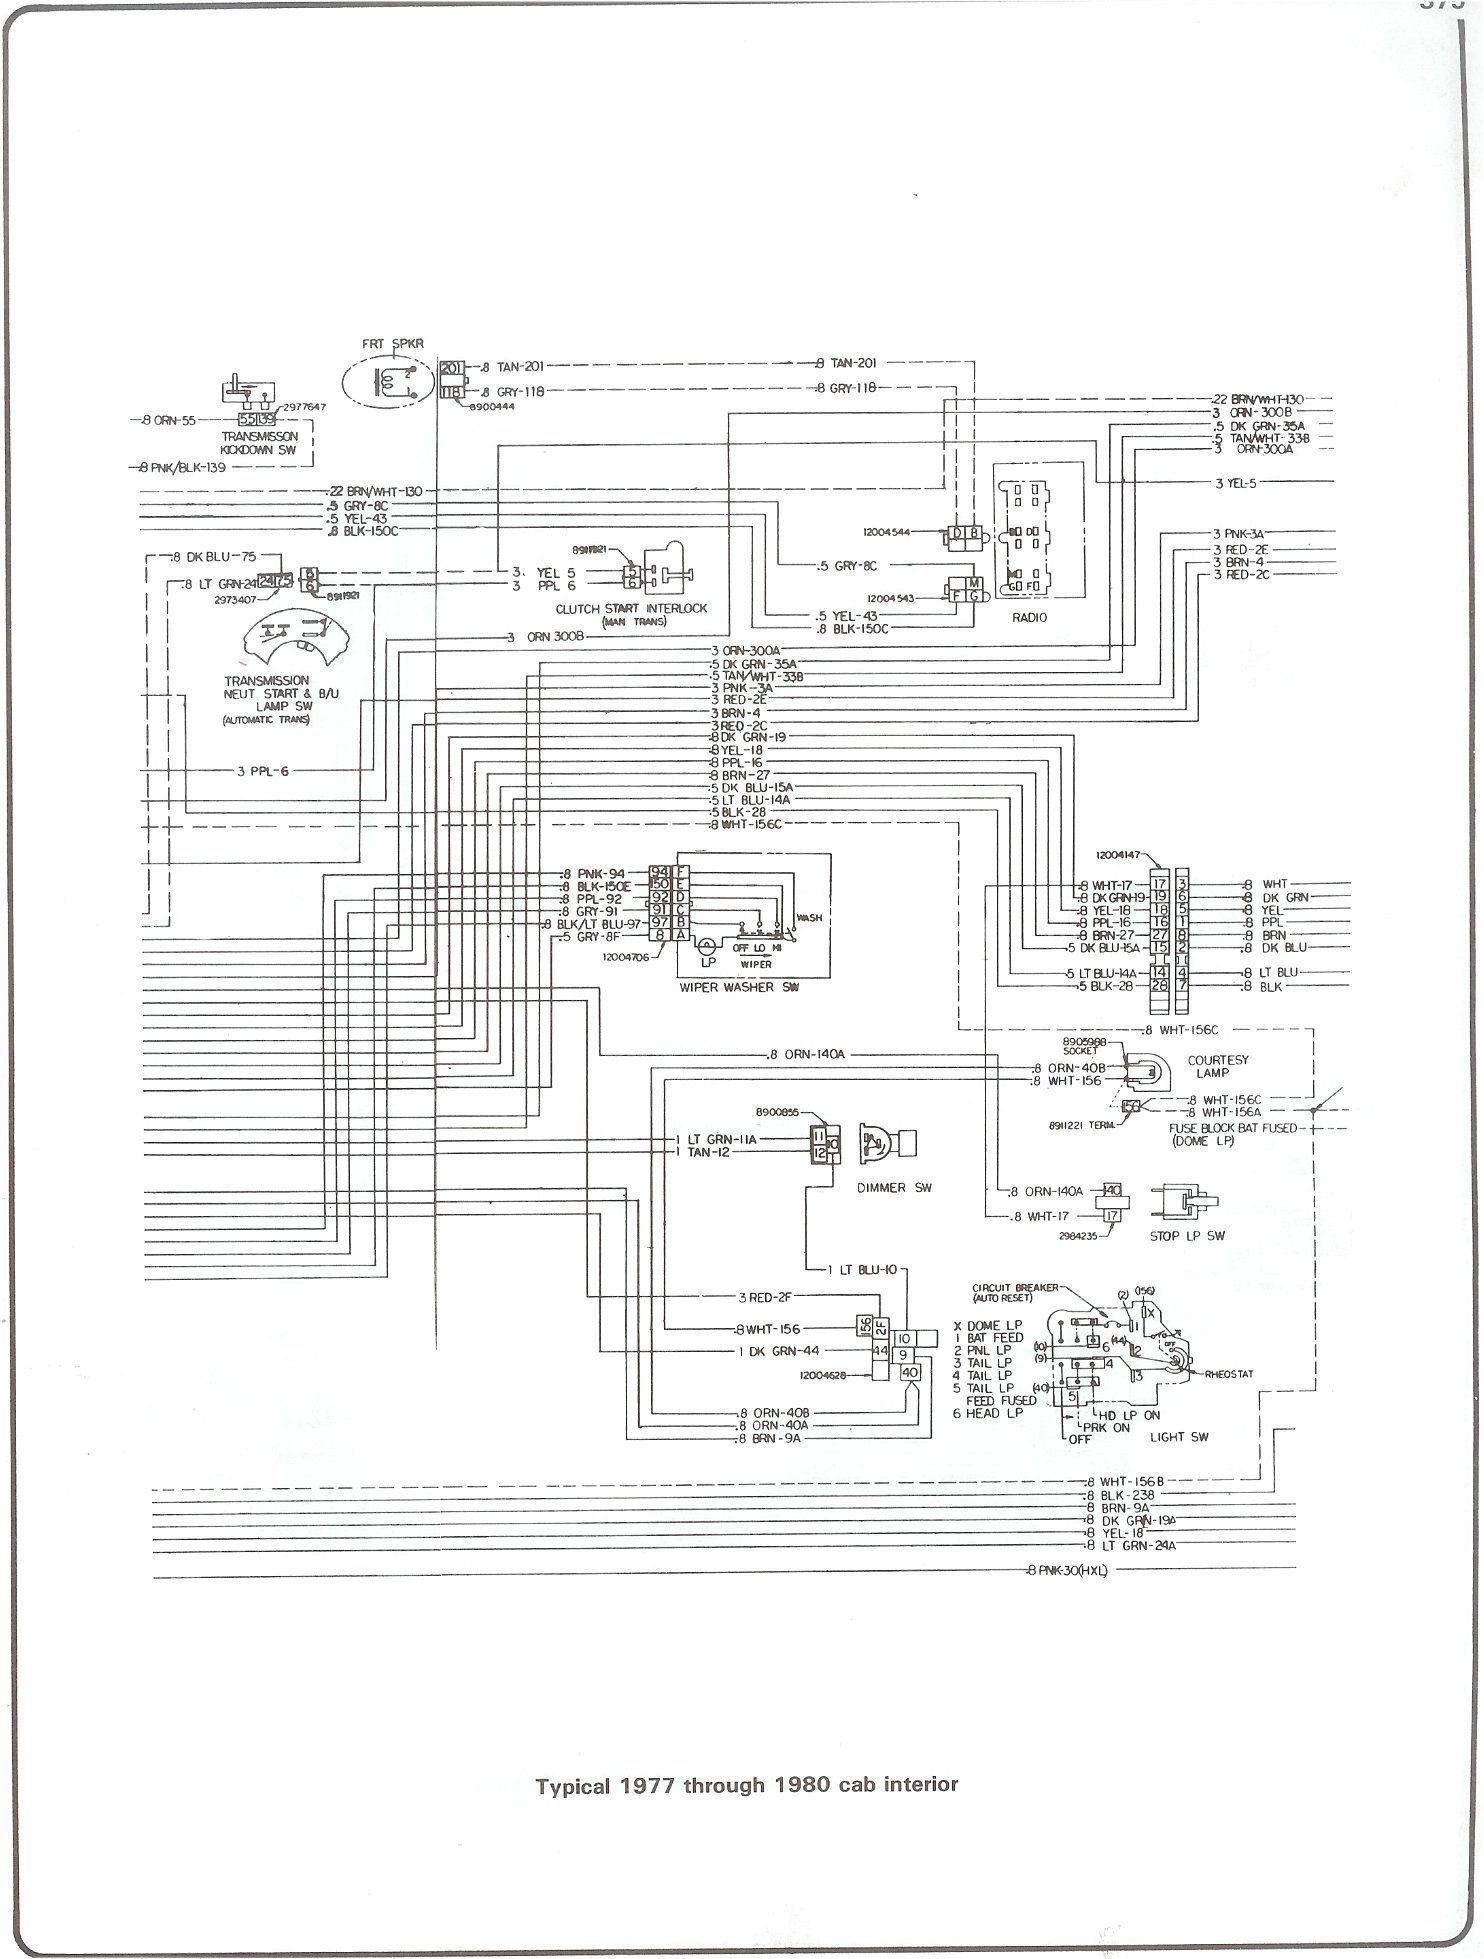 77 80_cab_inter complete 73 87 wiring diagrams 1987 gmc truck wiring diagram at webbmarketing.co